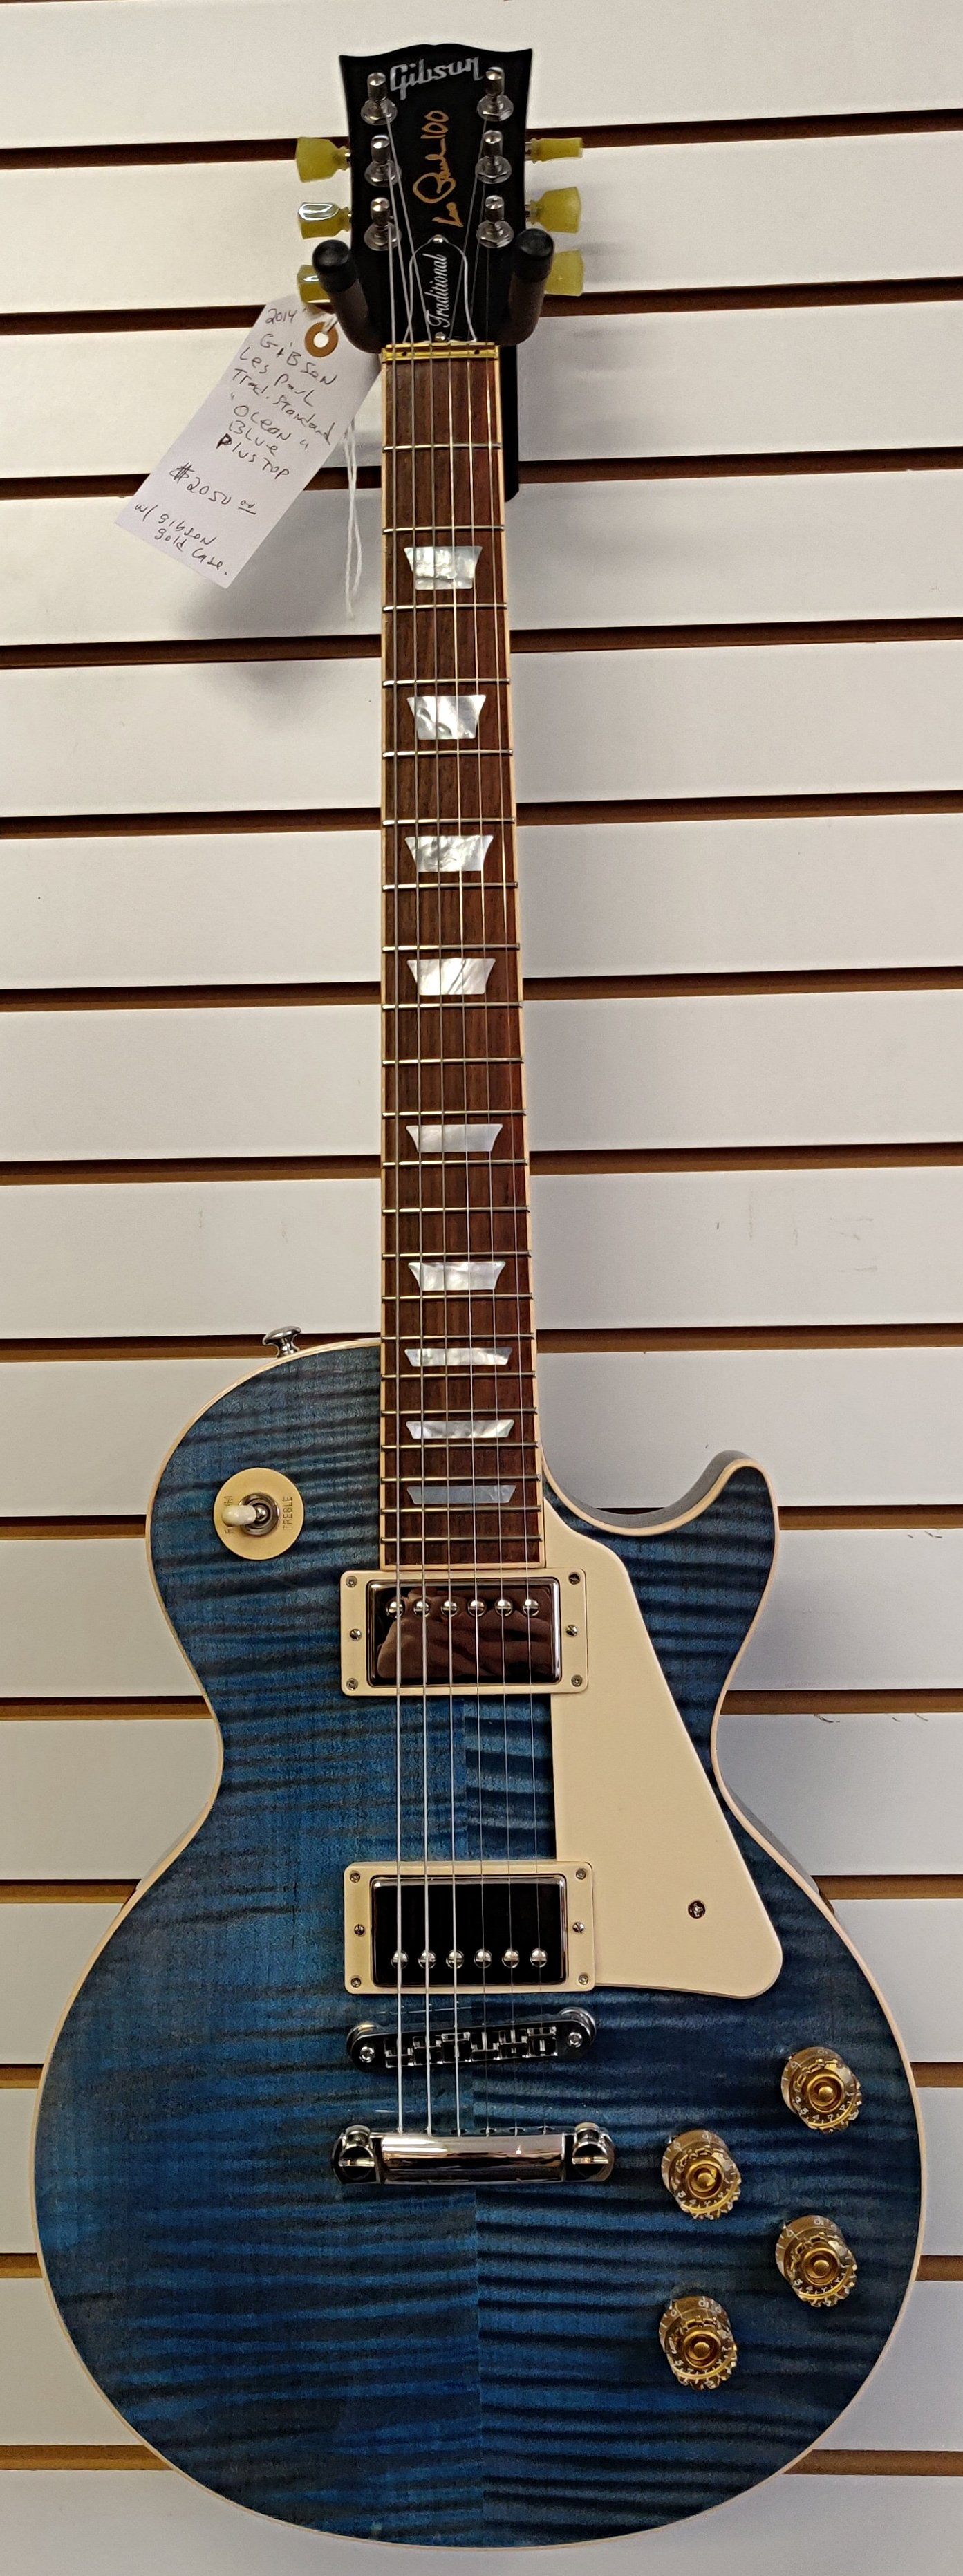 "USED - Gibson Les Paul standard Traditional ""Ocean Blue"" (2015 Model)"